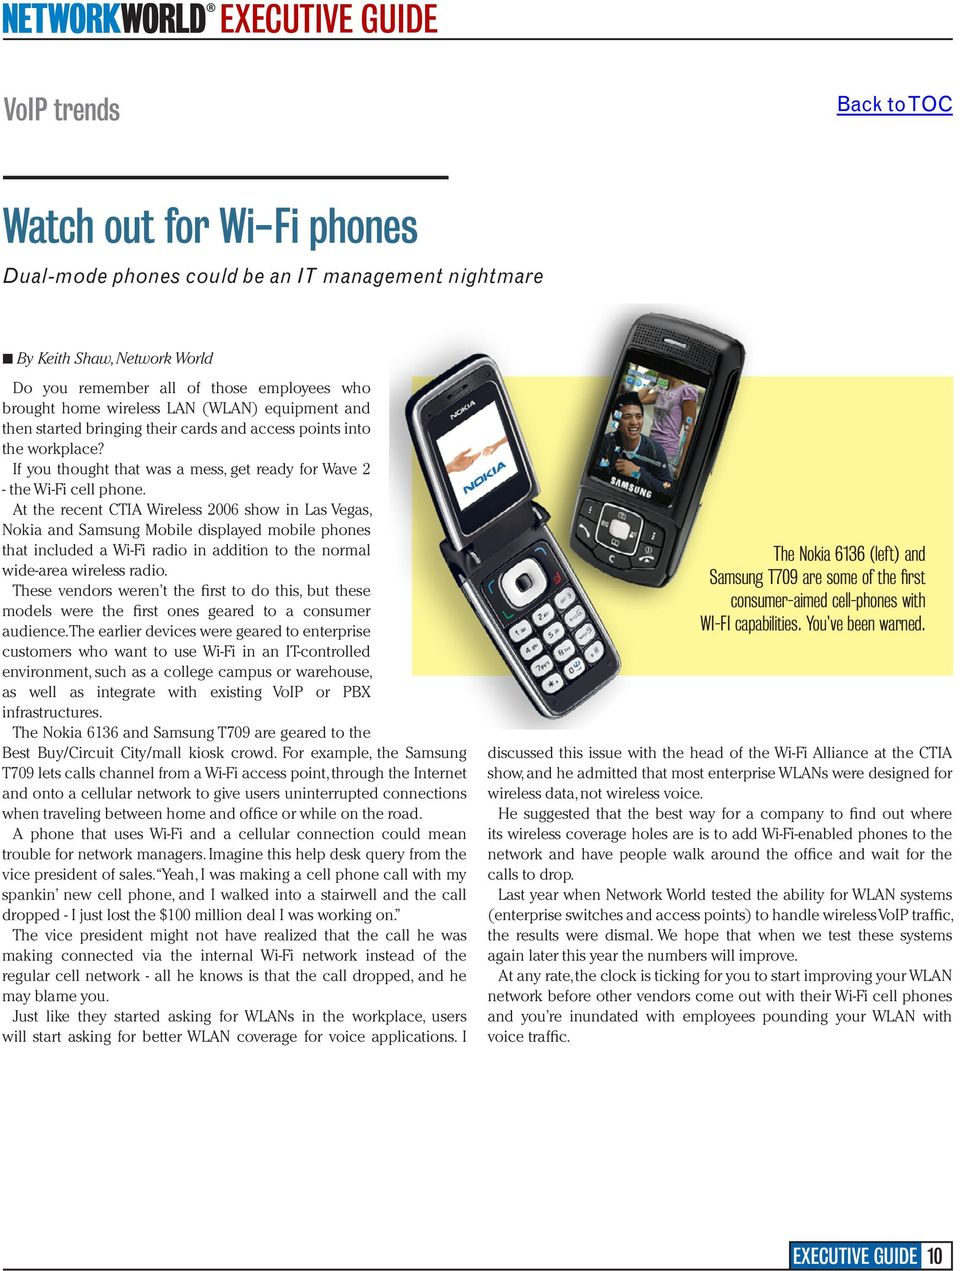 At the recent CTIA Wireless 2006 show in Las Vegas, Nokia and Samsung Mobile displayed mobile phones that included a Wi-Fi radio in addition to the normal wide-area wireless radio.